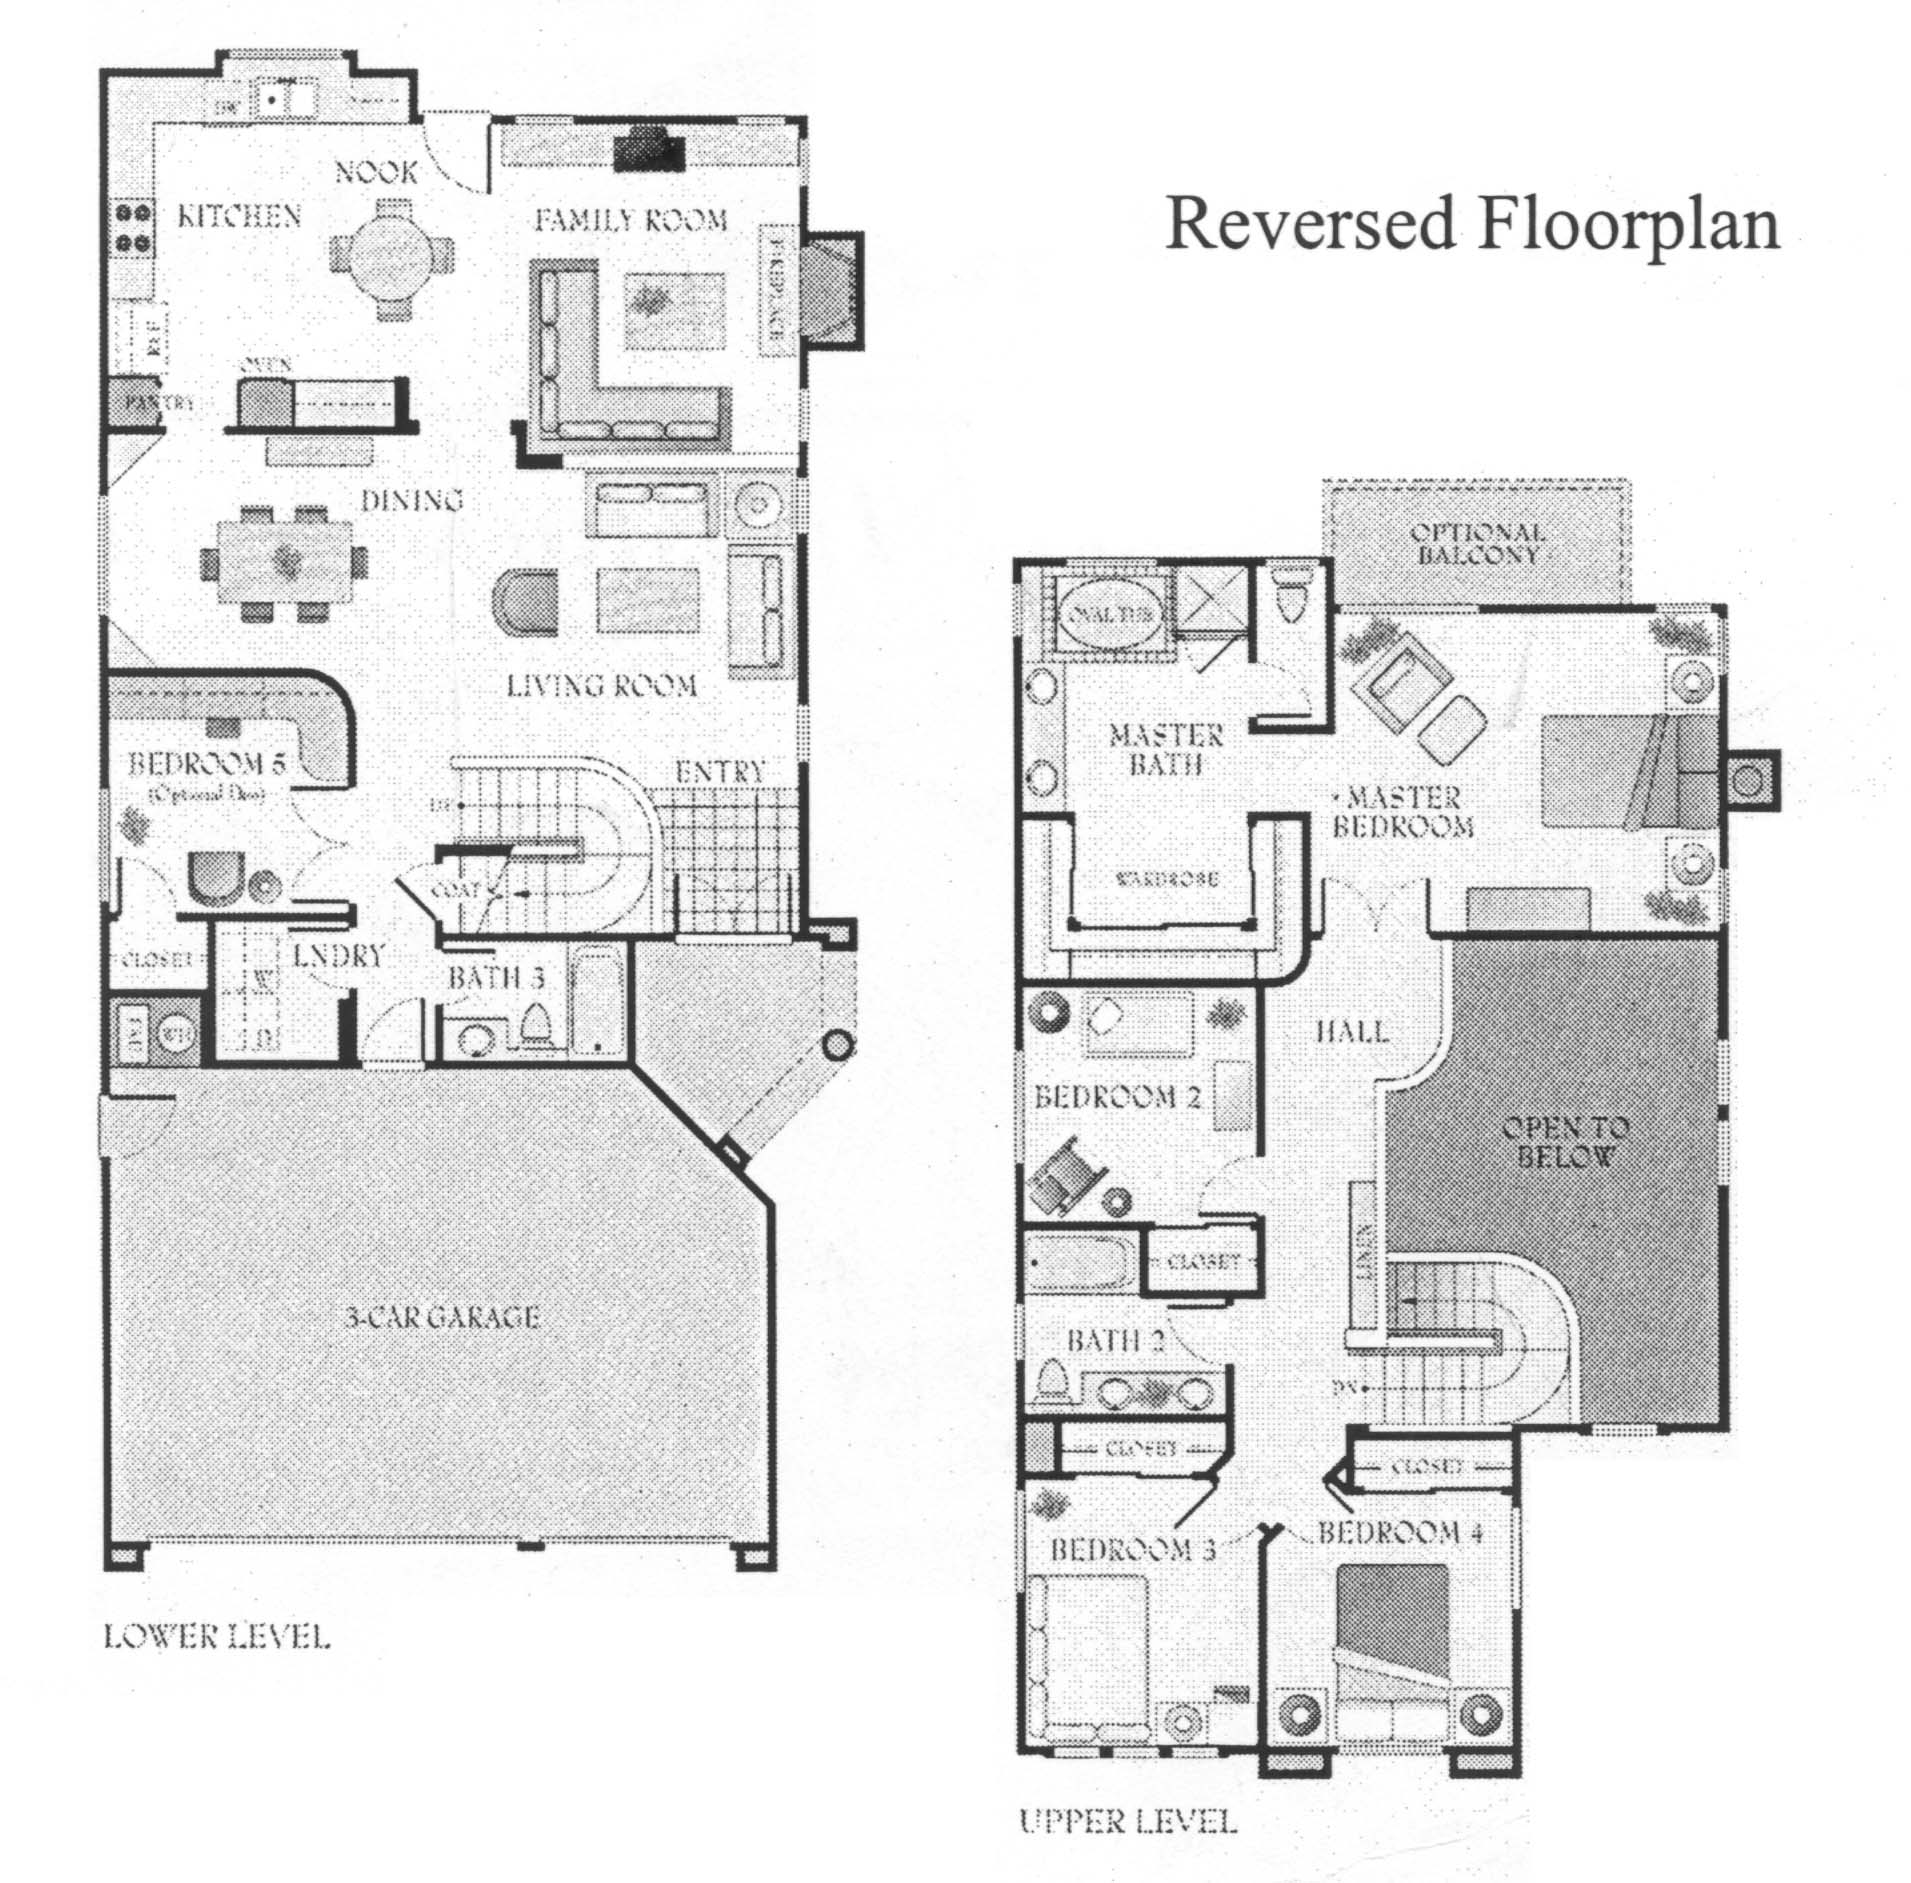 Master bath floor plans best layout room Bathroom blueprints for 8x10 space